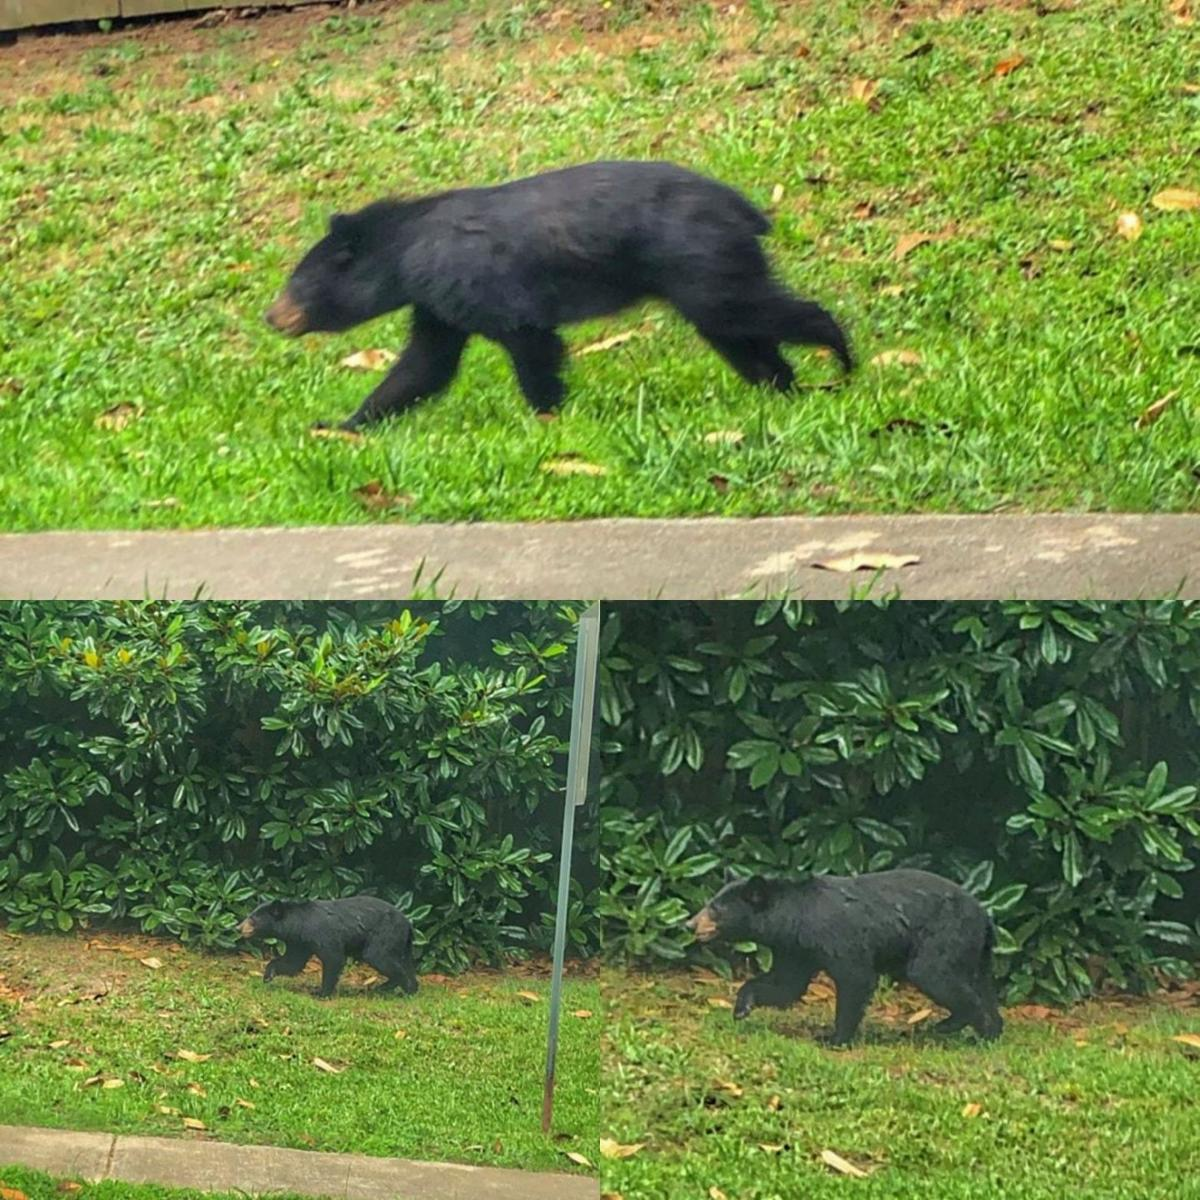 Bear Stripers a week after bear was hitcar in norcross, another